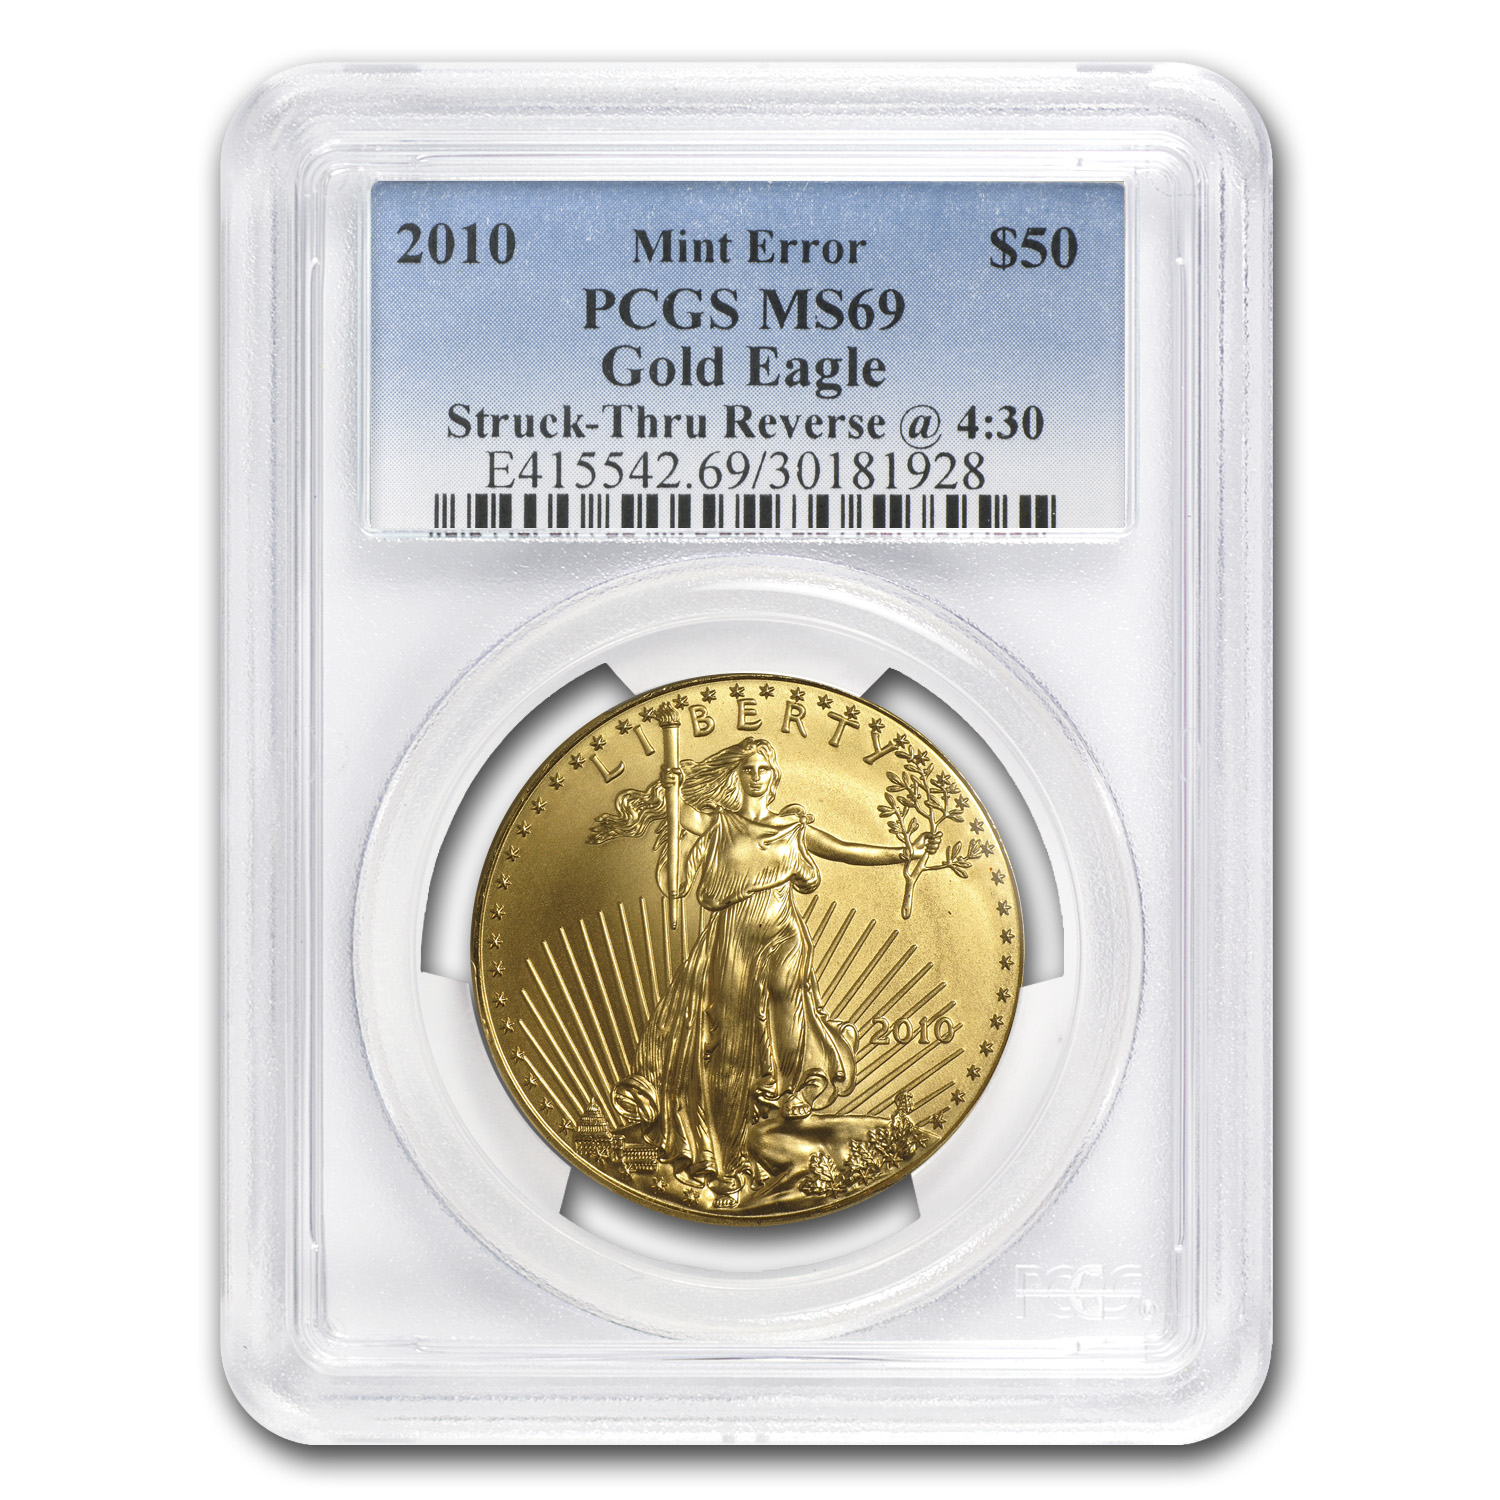 "2010 1 oz Gold Eagle Mint Error PCGS MS-69 ""Rev Struck Thru"""